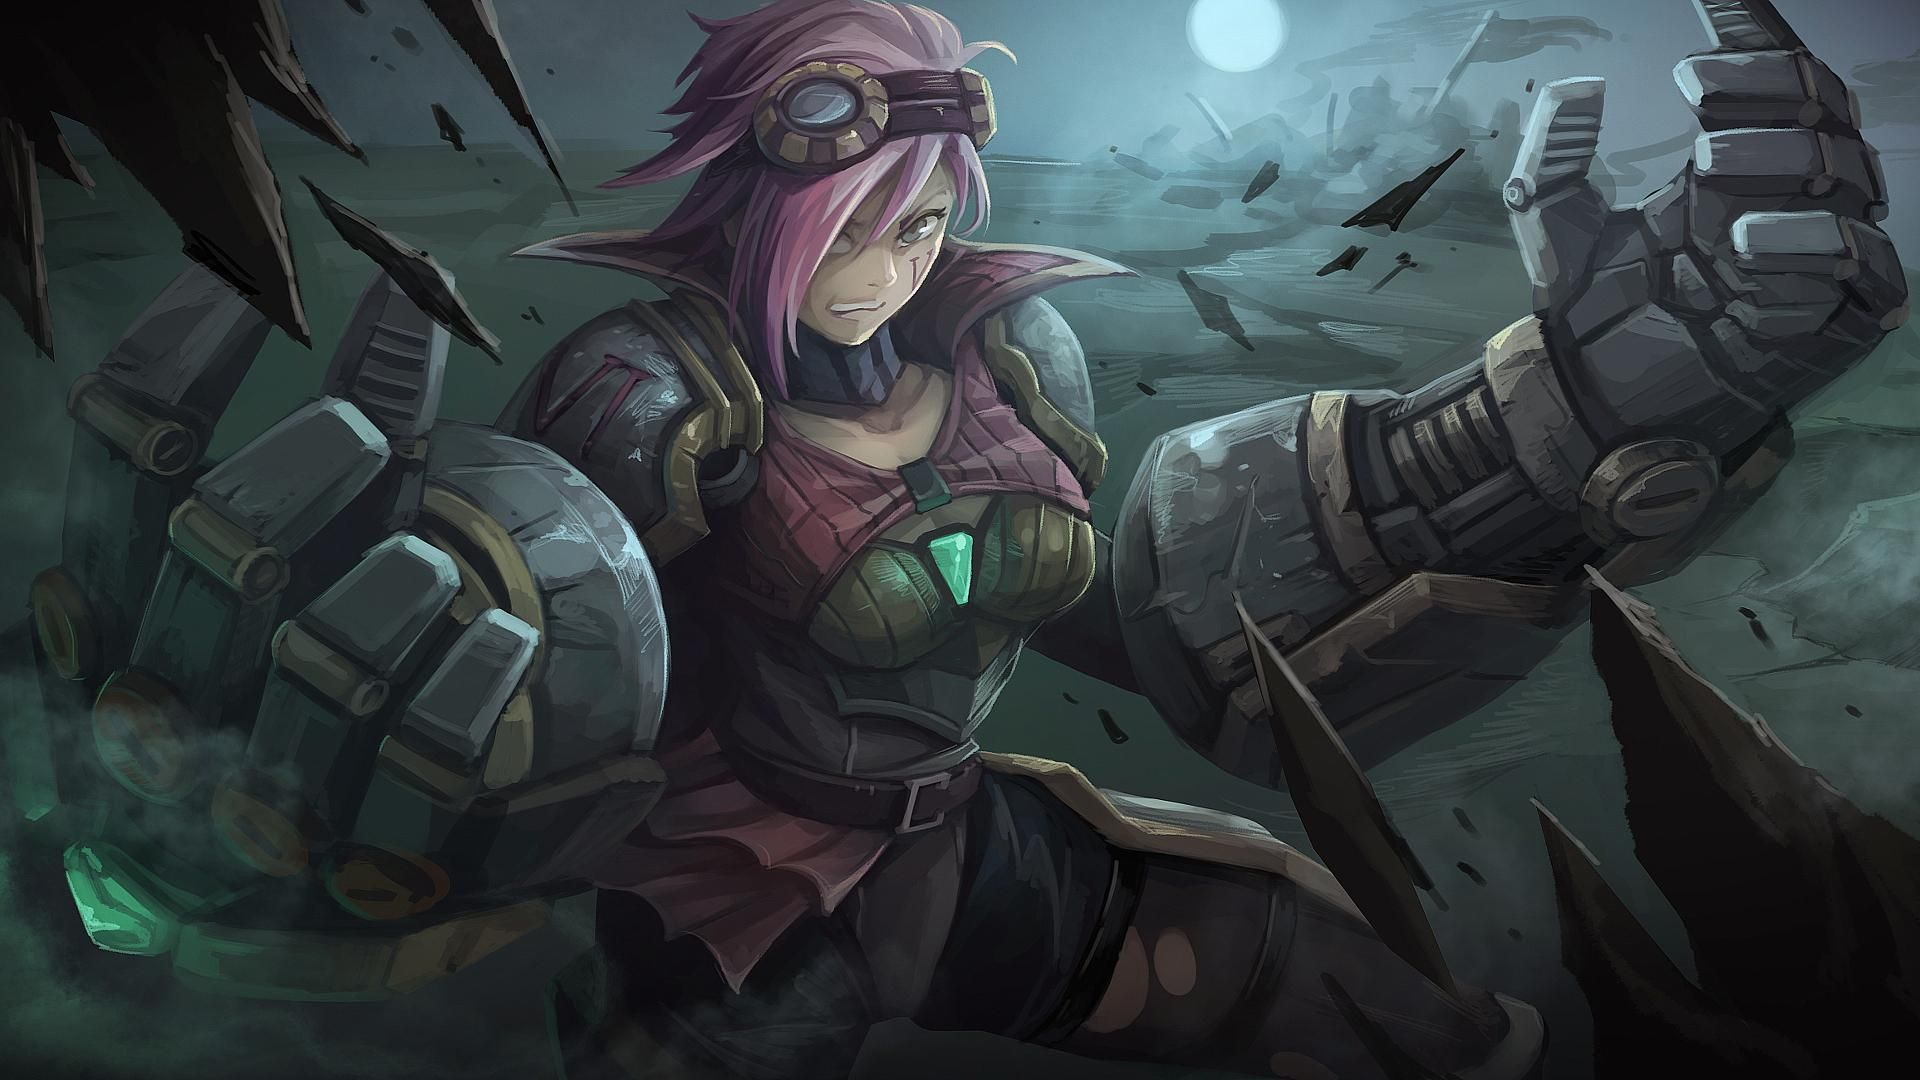 Pin By Corve Strife On League Of Legends Art Vi League Of Legends League Of Legends Game League Of Legends